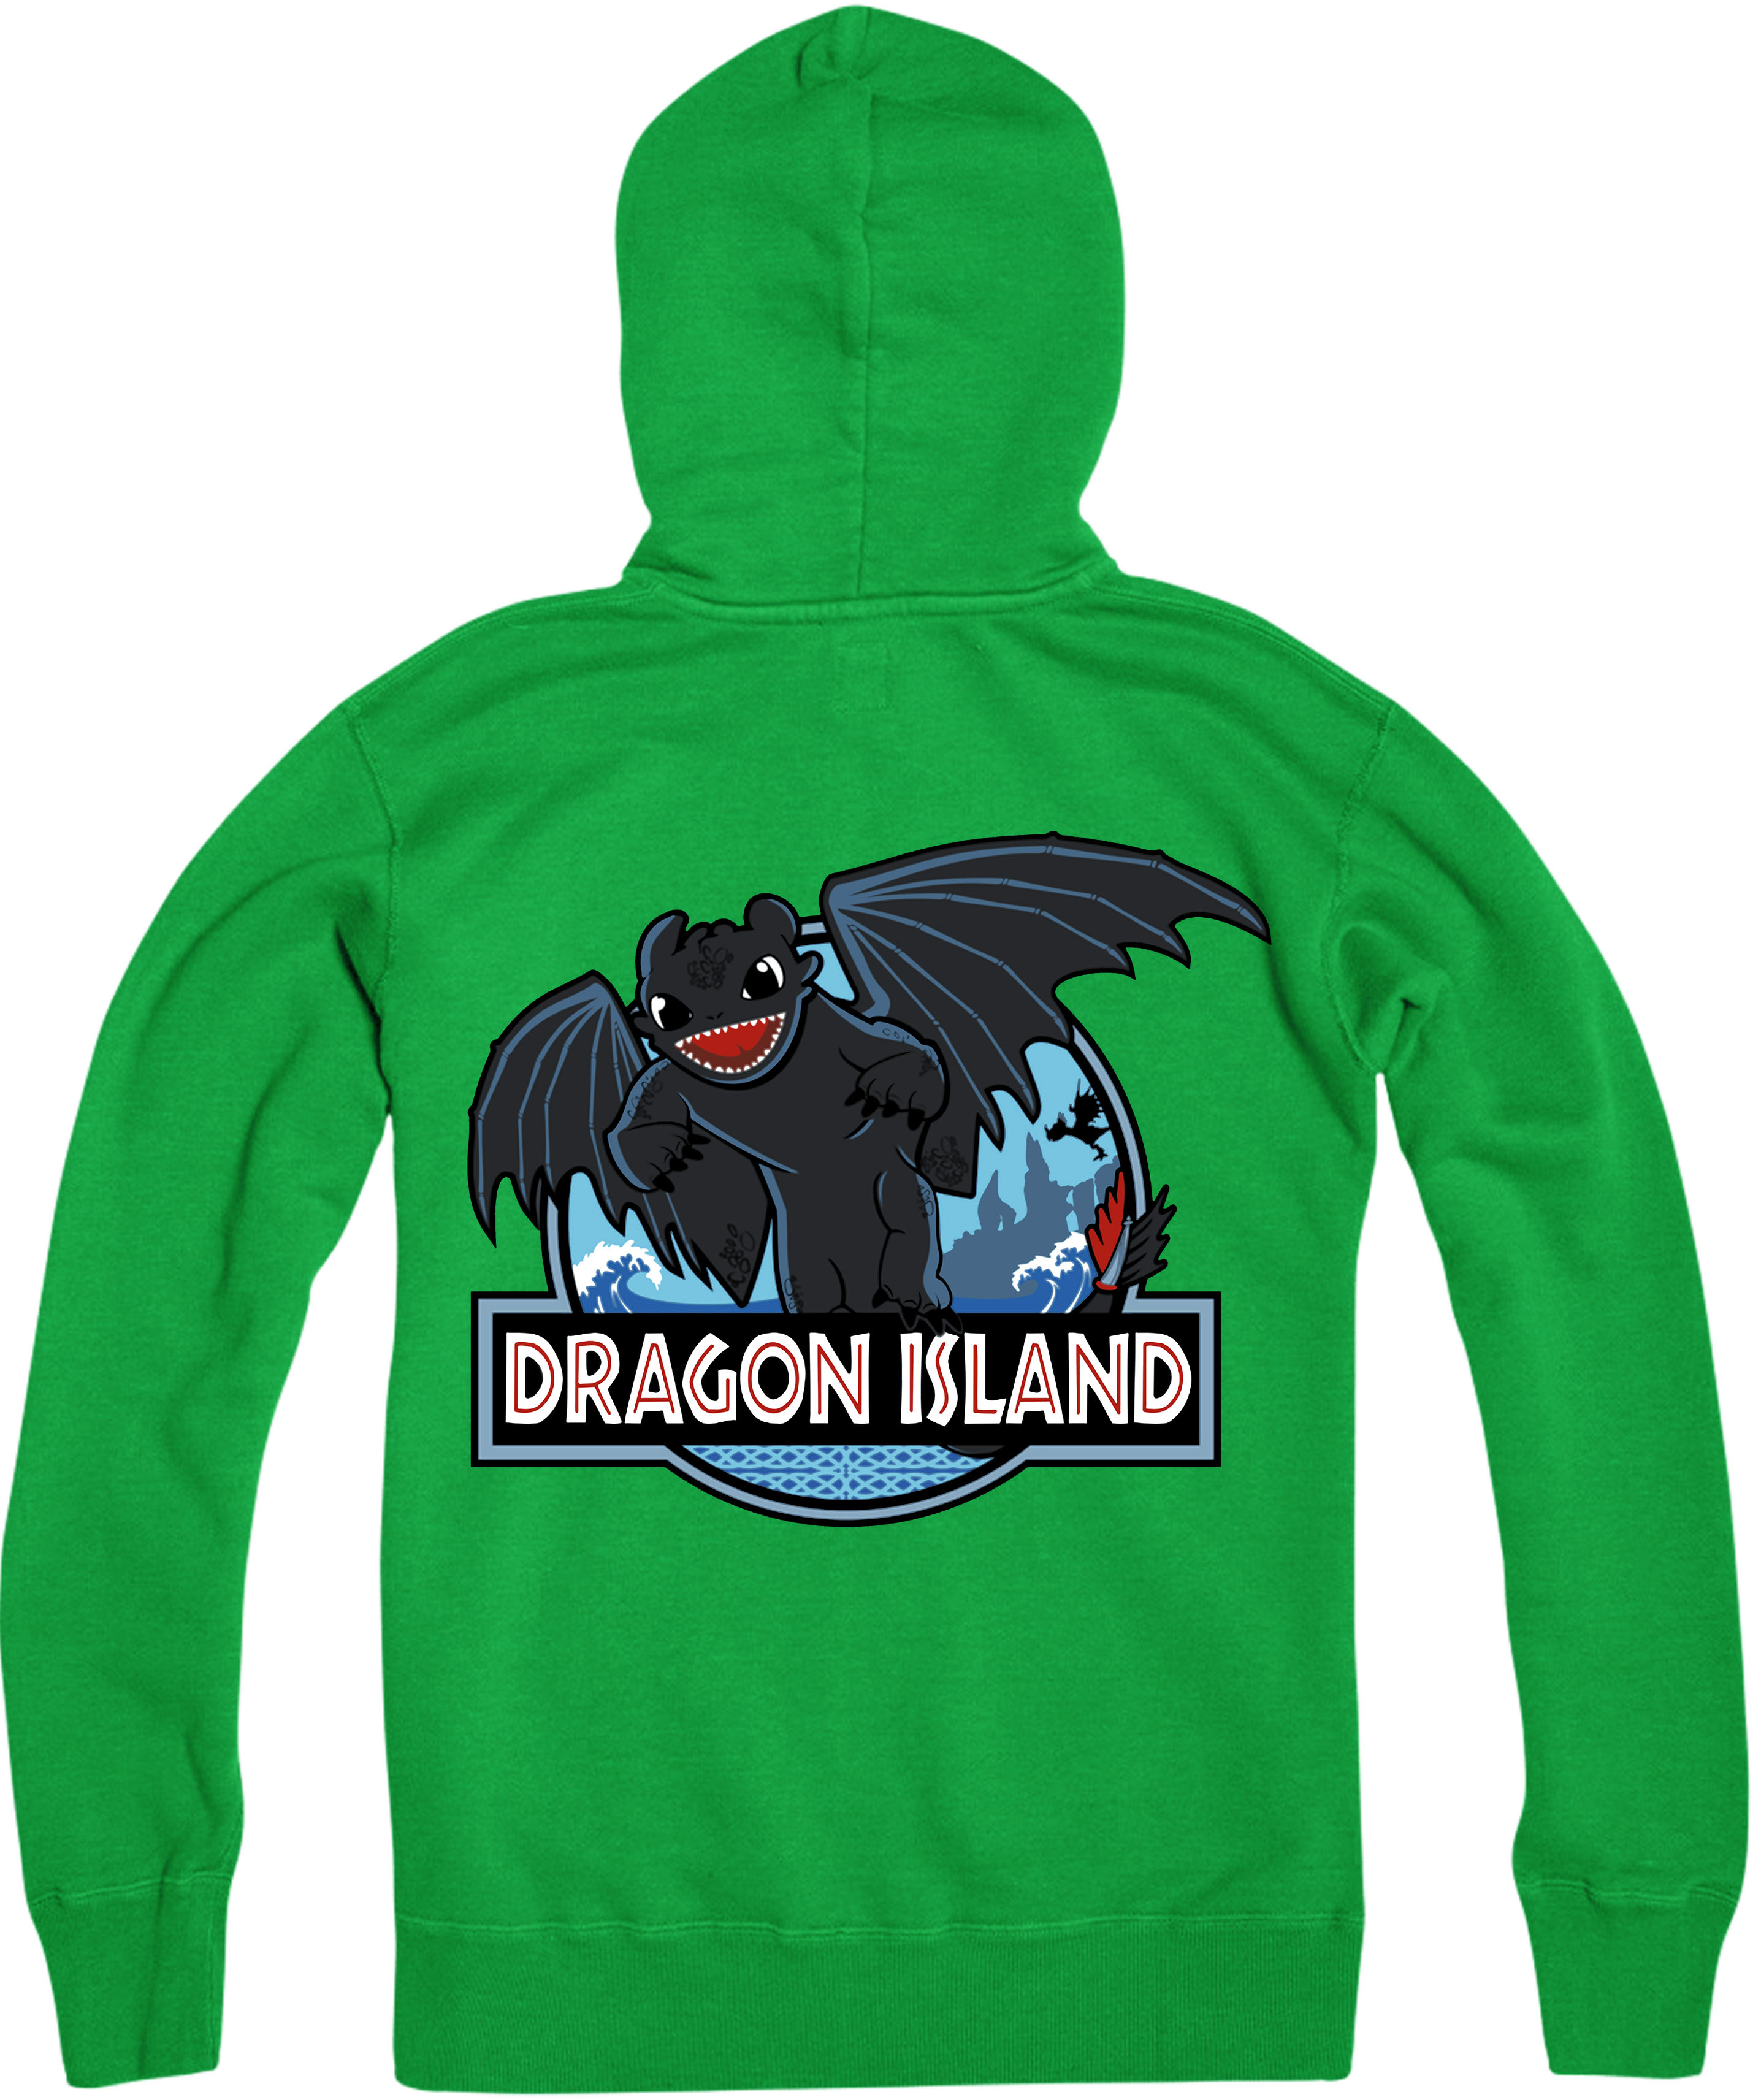 Toothless how to train your dragon hoodie jurassic park spoof gift toothless how to train your dragon hoodie jurassic ccuart Image collections